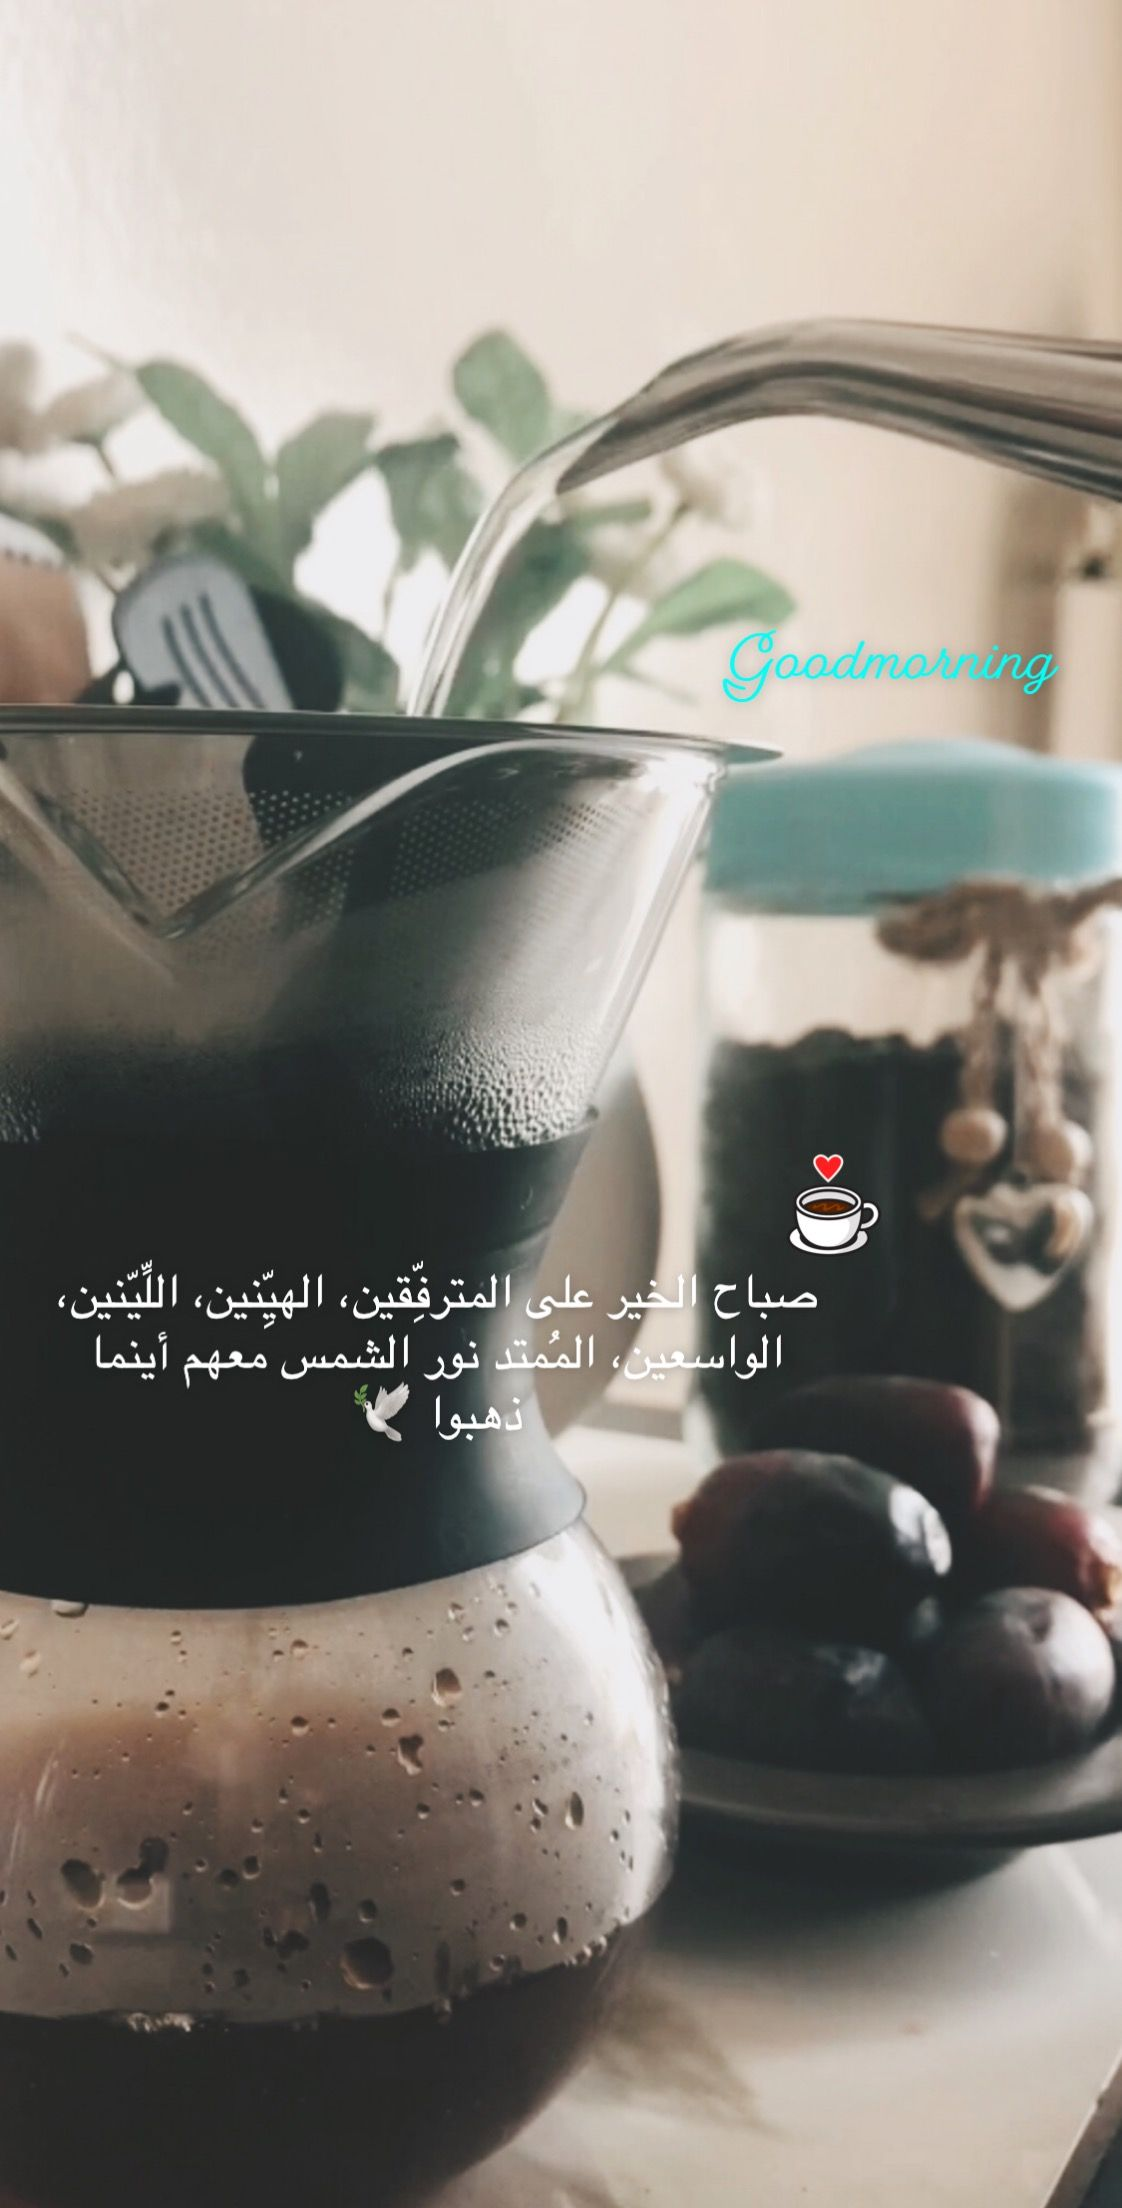 Goodmorning All Beautiful Arabic Words Arabic Love Quotes Arabic Quotes